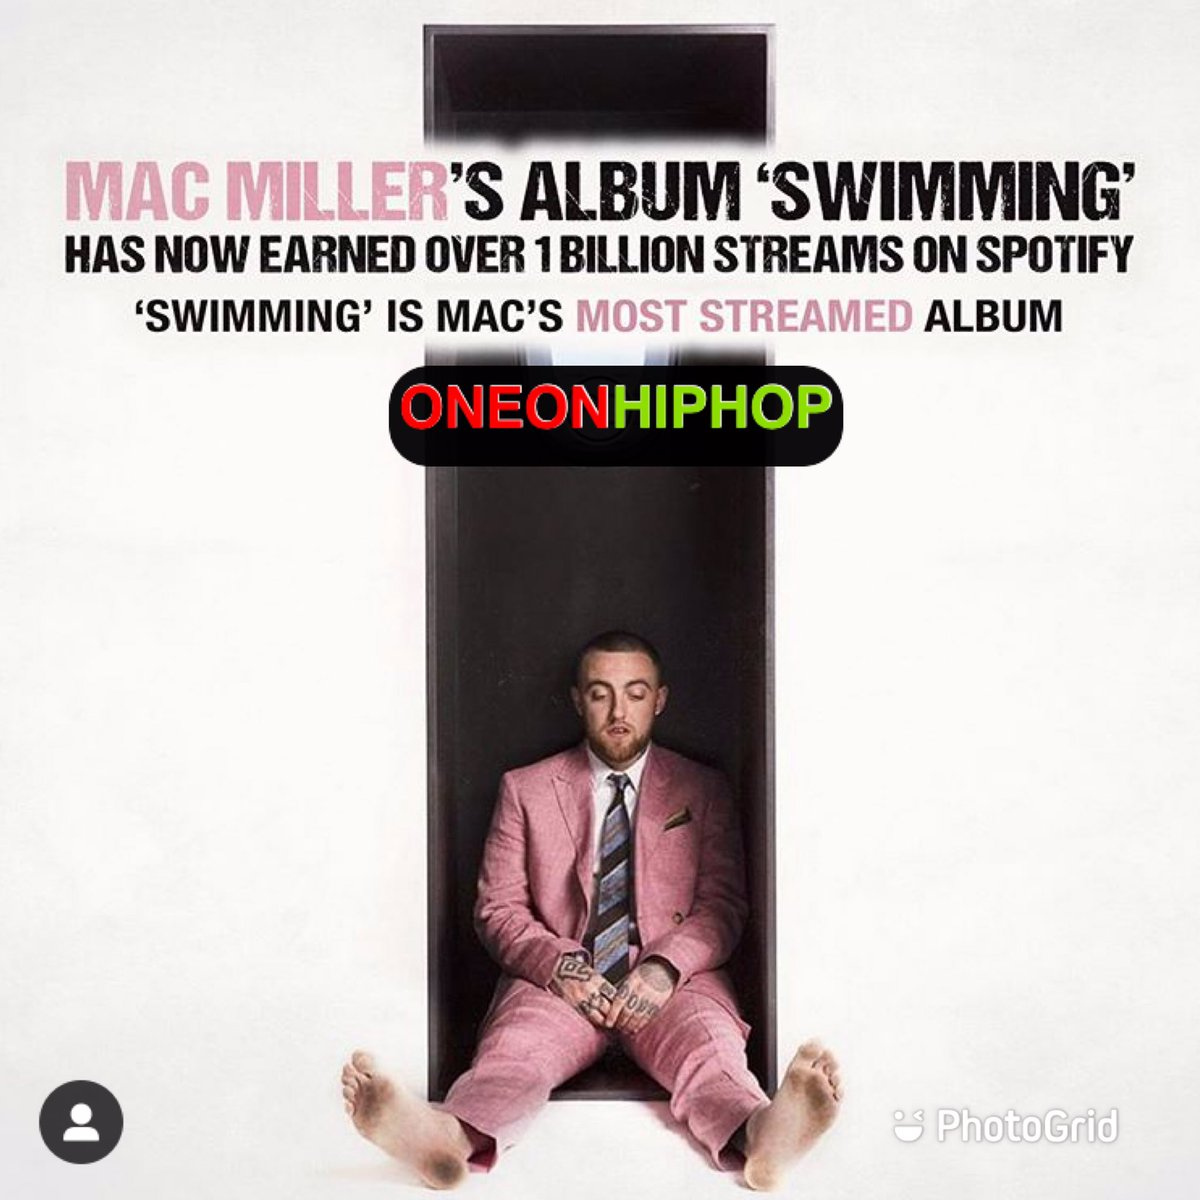 R.I.P. #macmiller most streamed album #swimming #hiphop #rap #oneonhiphop #oneonhiphopnews #rostrumpic.twitter.com/X0zCLvnxFn